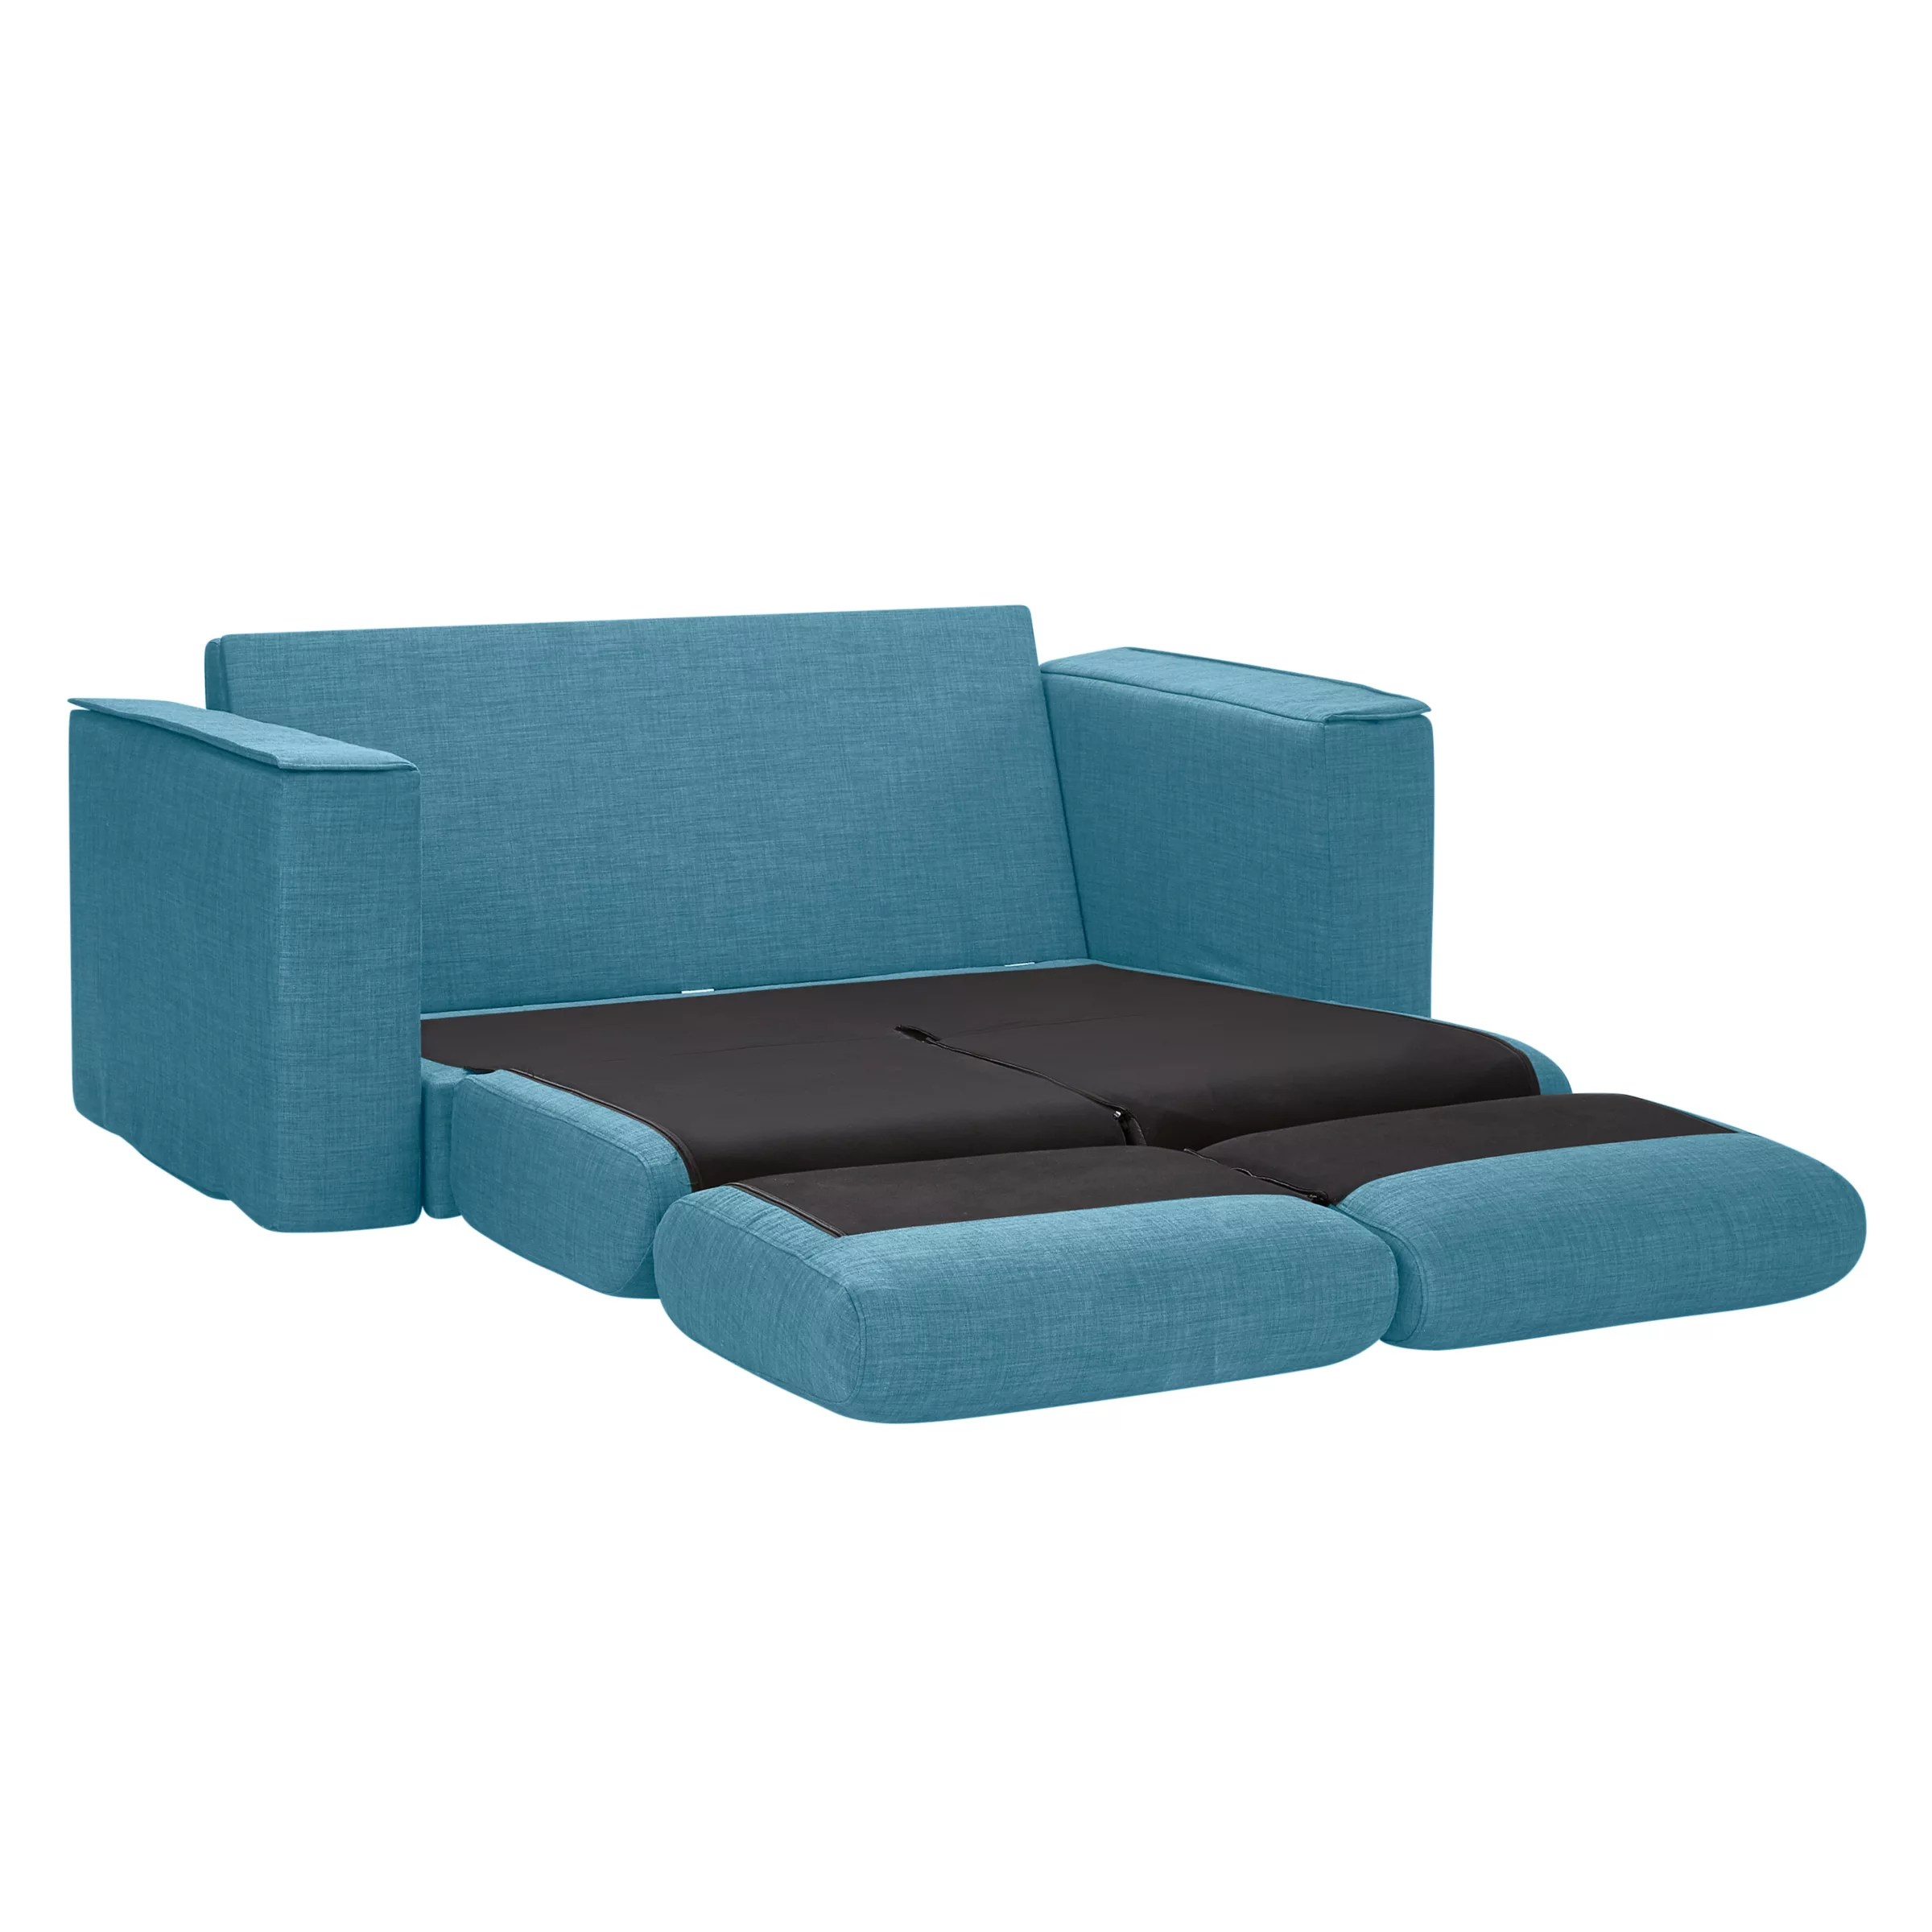 sofa foam online best price for leather sofas storage beds living room furniture